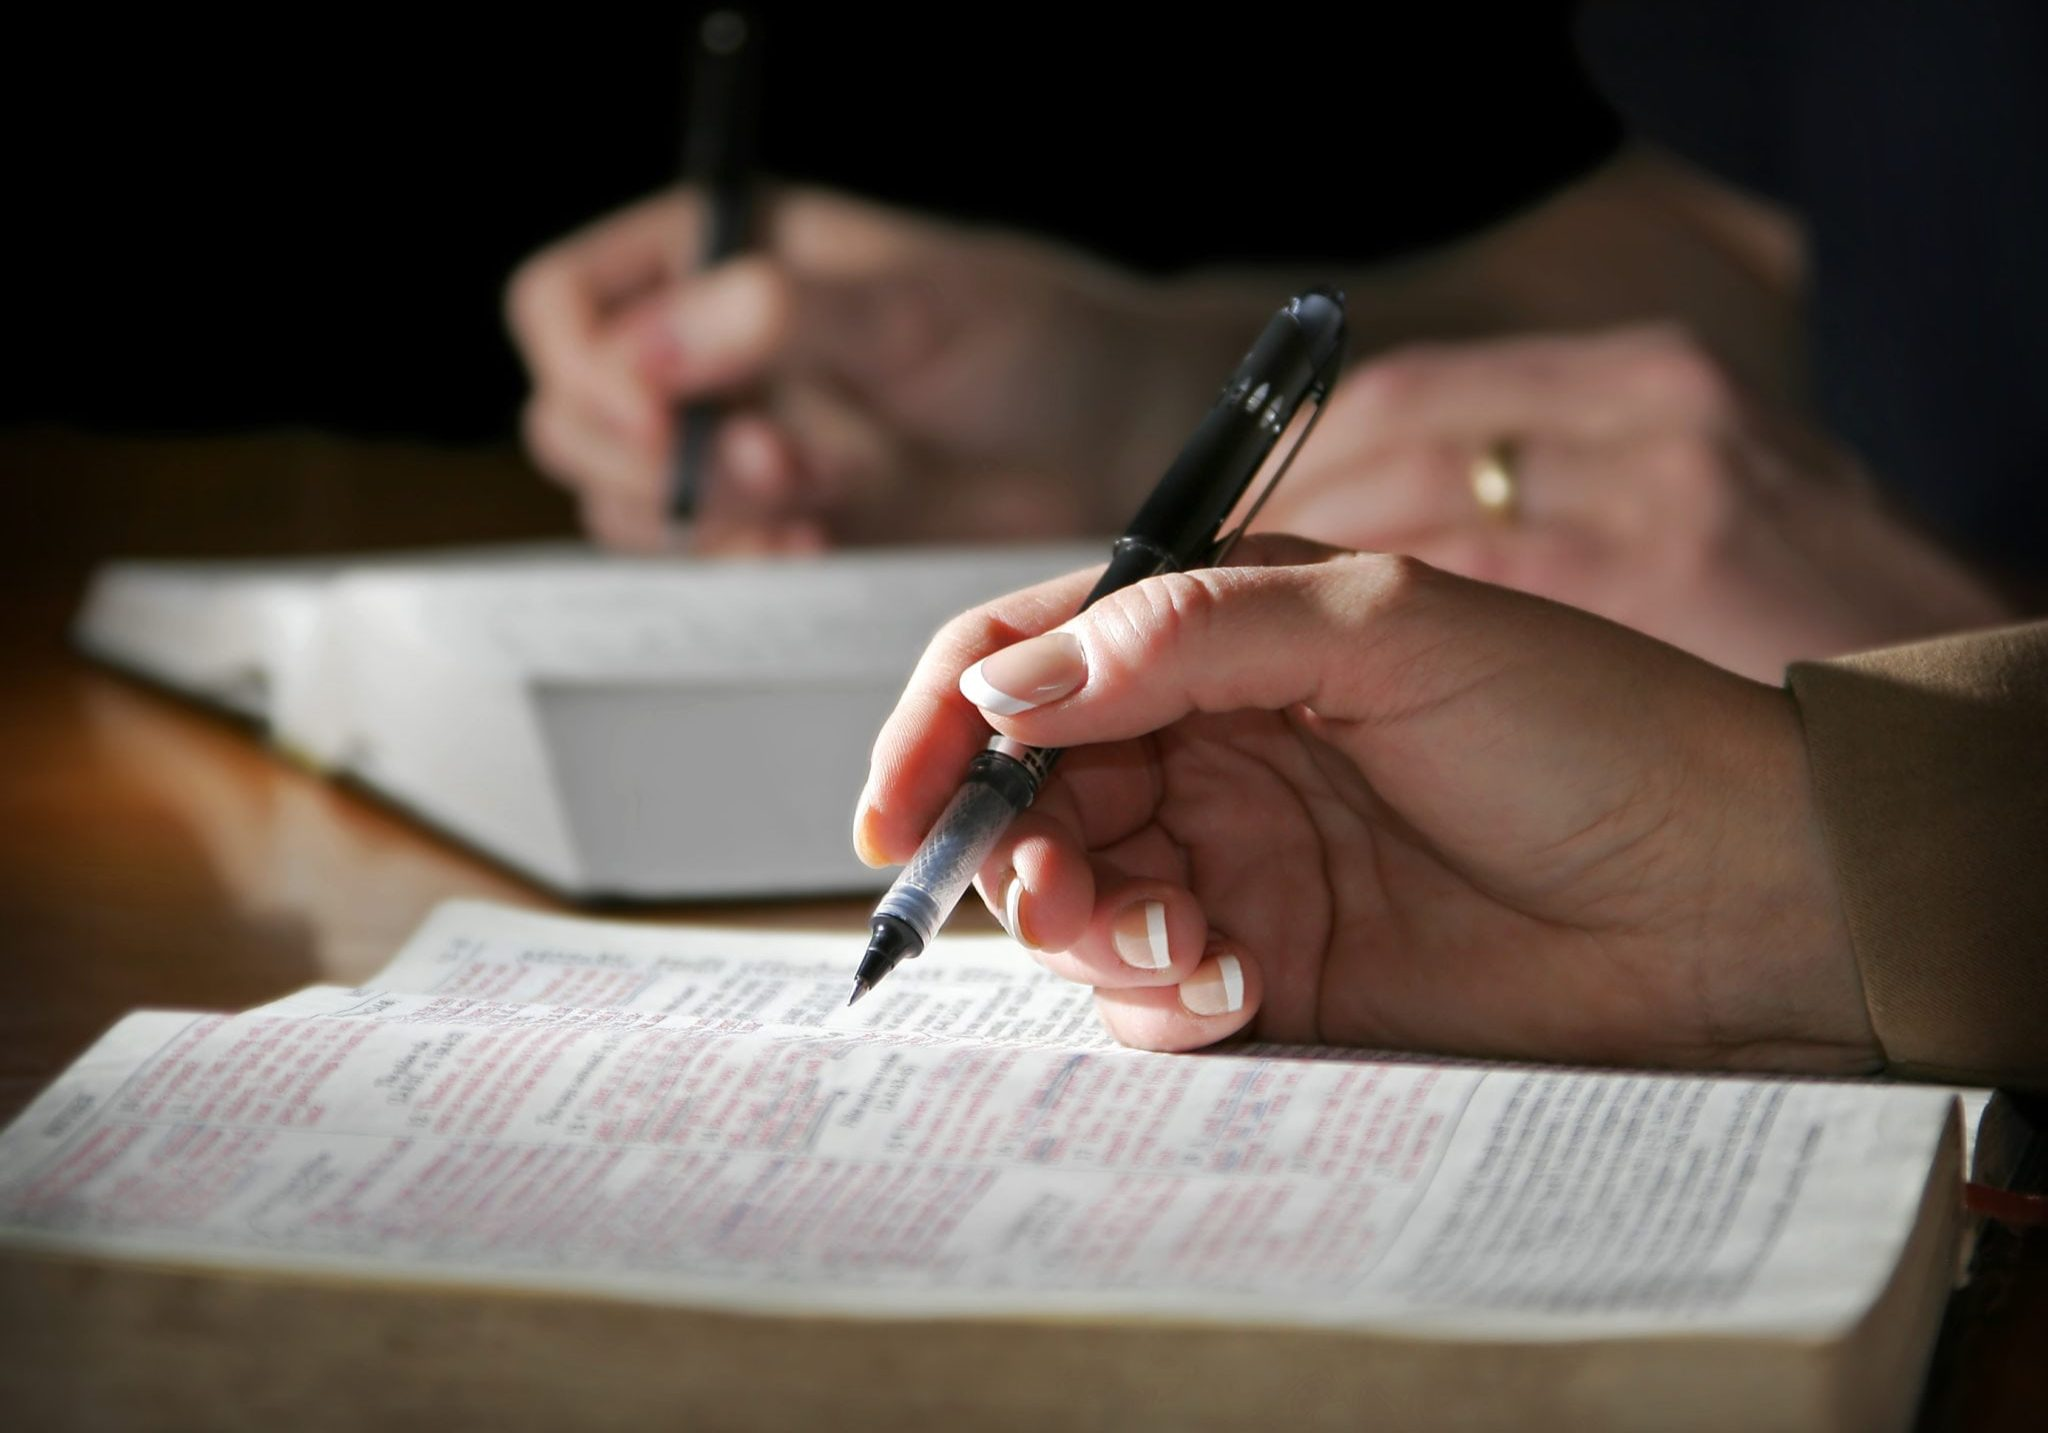 The hands of a couple are highlighted as they study the Holy Bible together - focus point on the woman's foreground hand.